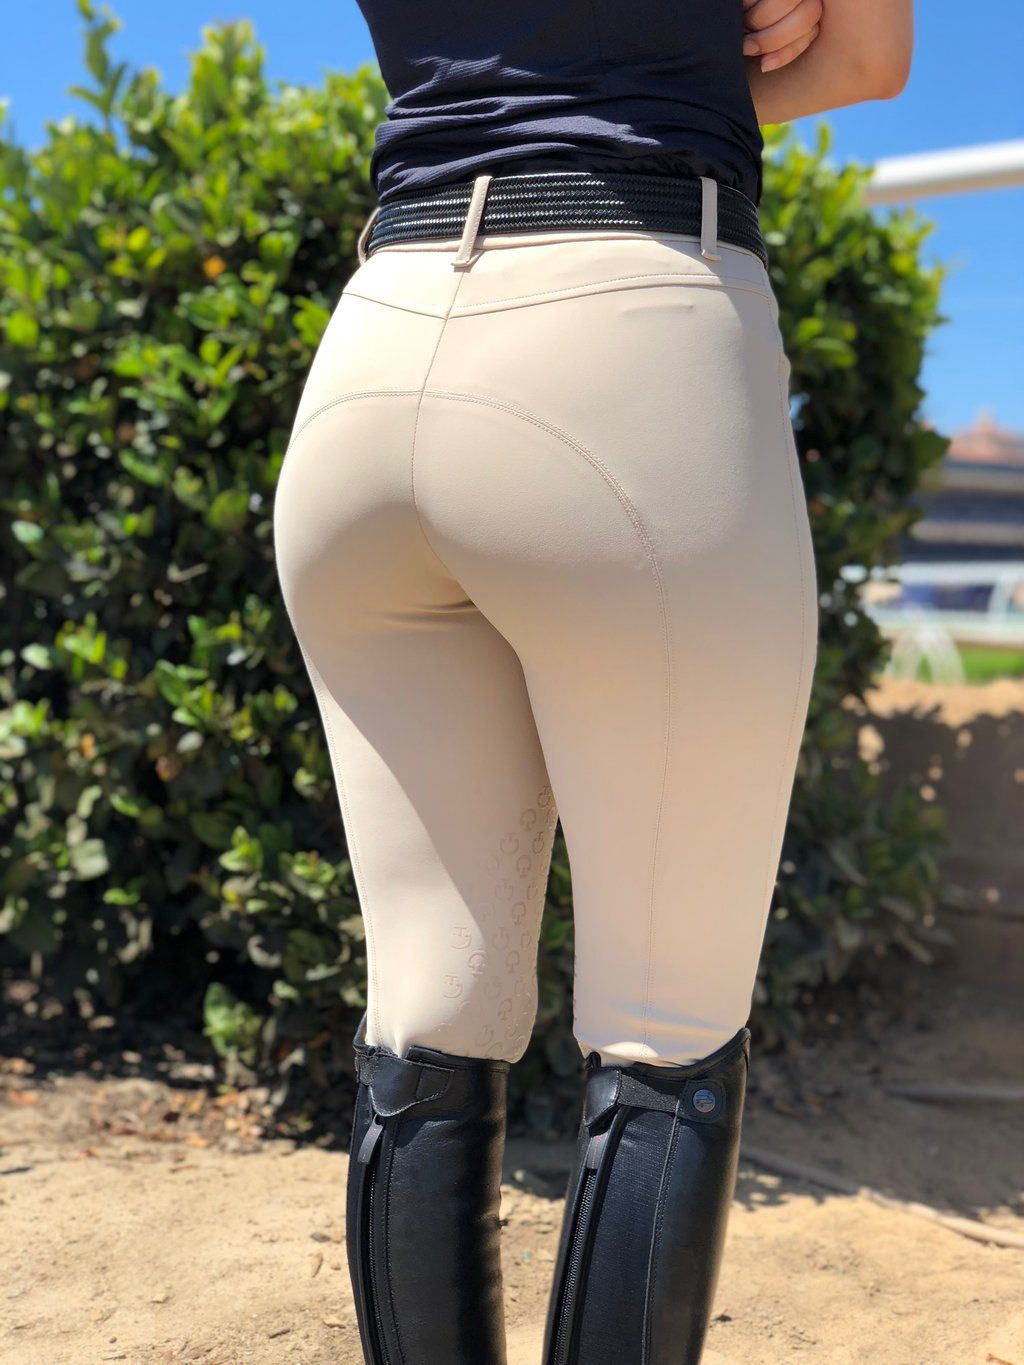 Sexy Girls In Horse Riding Clothes  Hot Girl Hd Wallpaper-5577